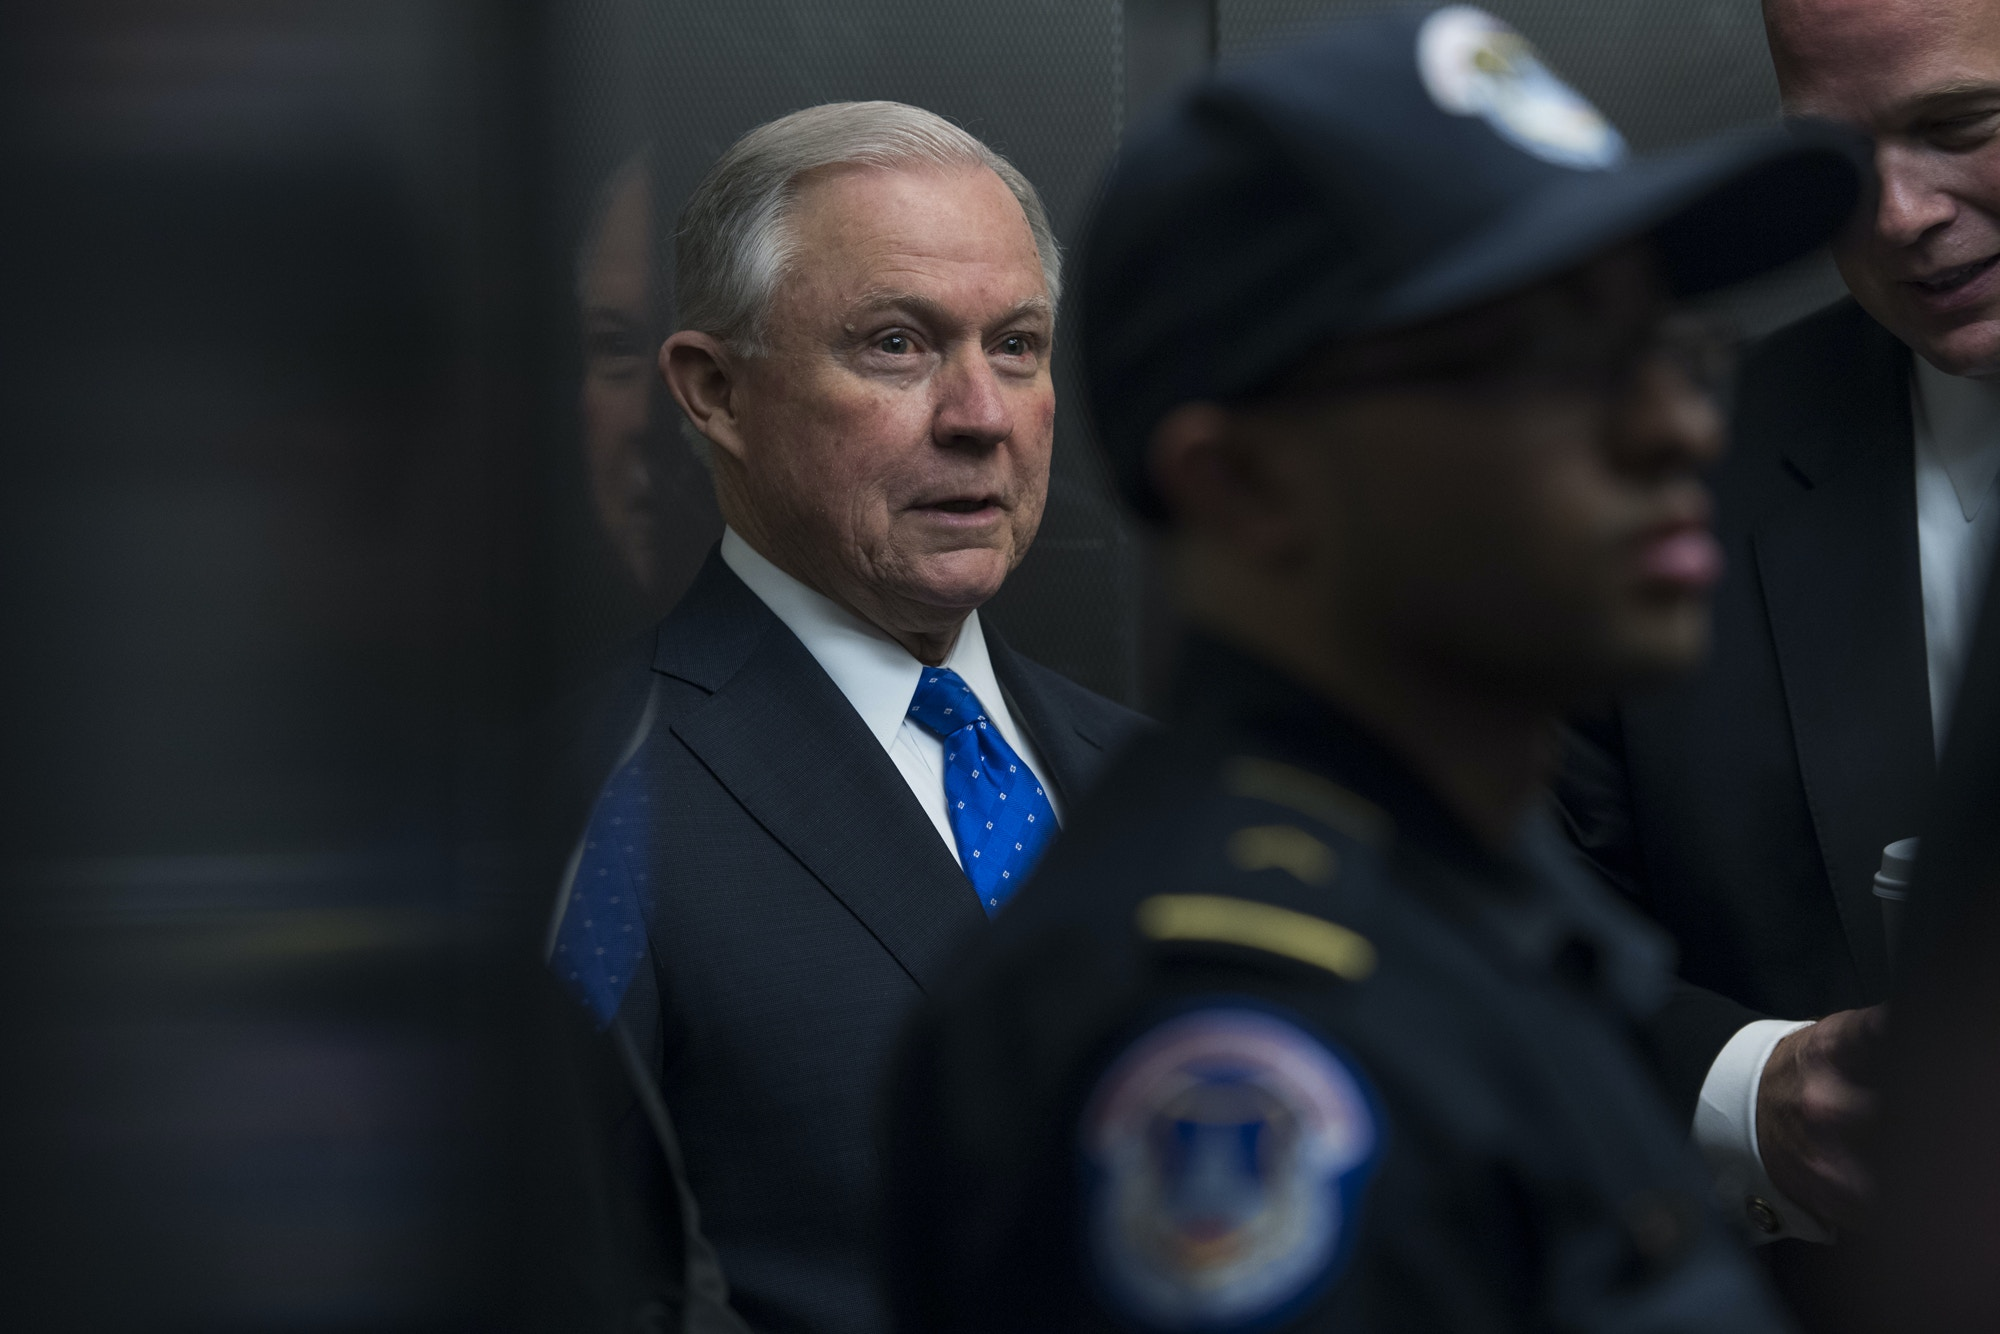 """UNITED STATES - APRIL 26: Attorney General Jeff Sessions arrives to testify before a House Appropriations Commerce, Justice, Science, and Related Agencies Subcommittee hearing in Rayburn Building titled """"'FY2019 Department of Justice,"""" on April 26, 2018. (Photo By Tom Williams/CQ Roll Call) (CQ Roll Call via AP Images)"""